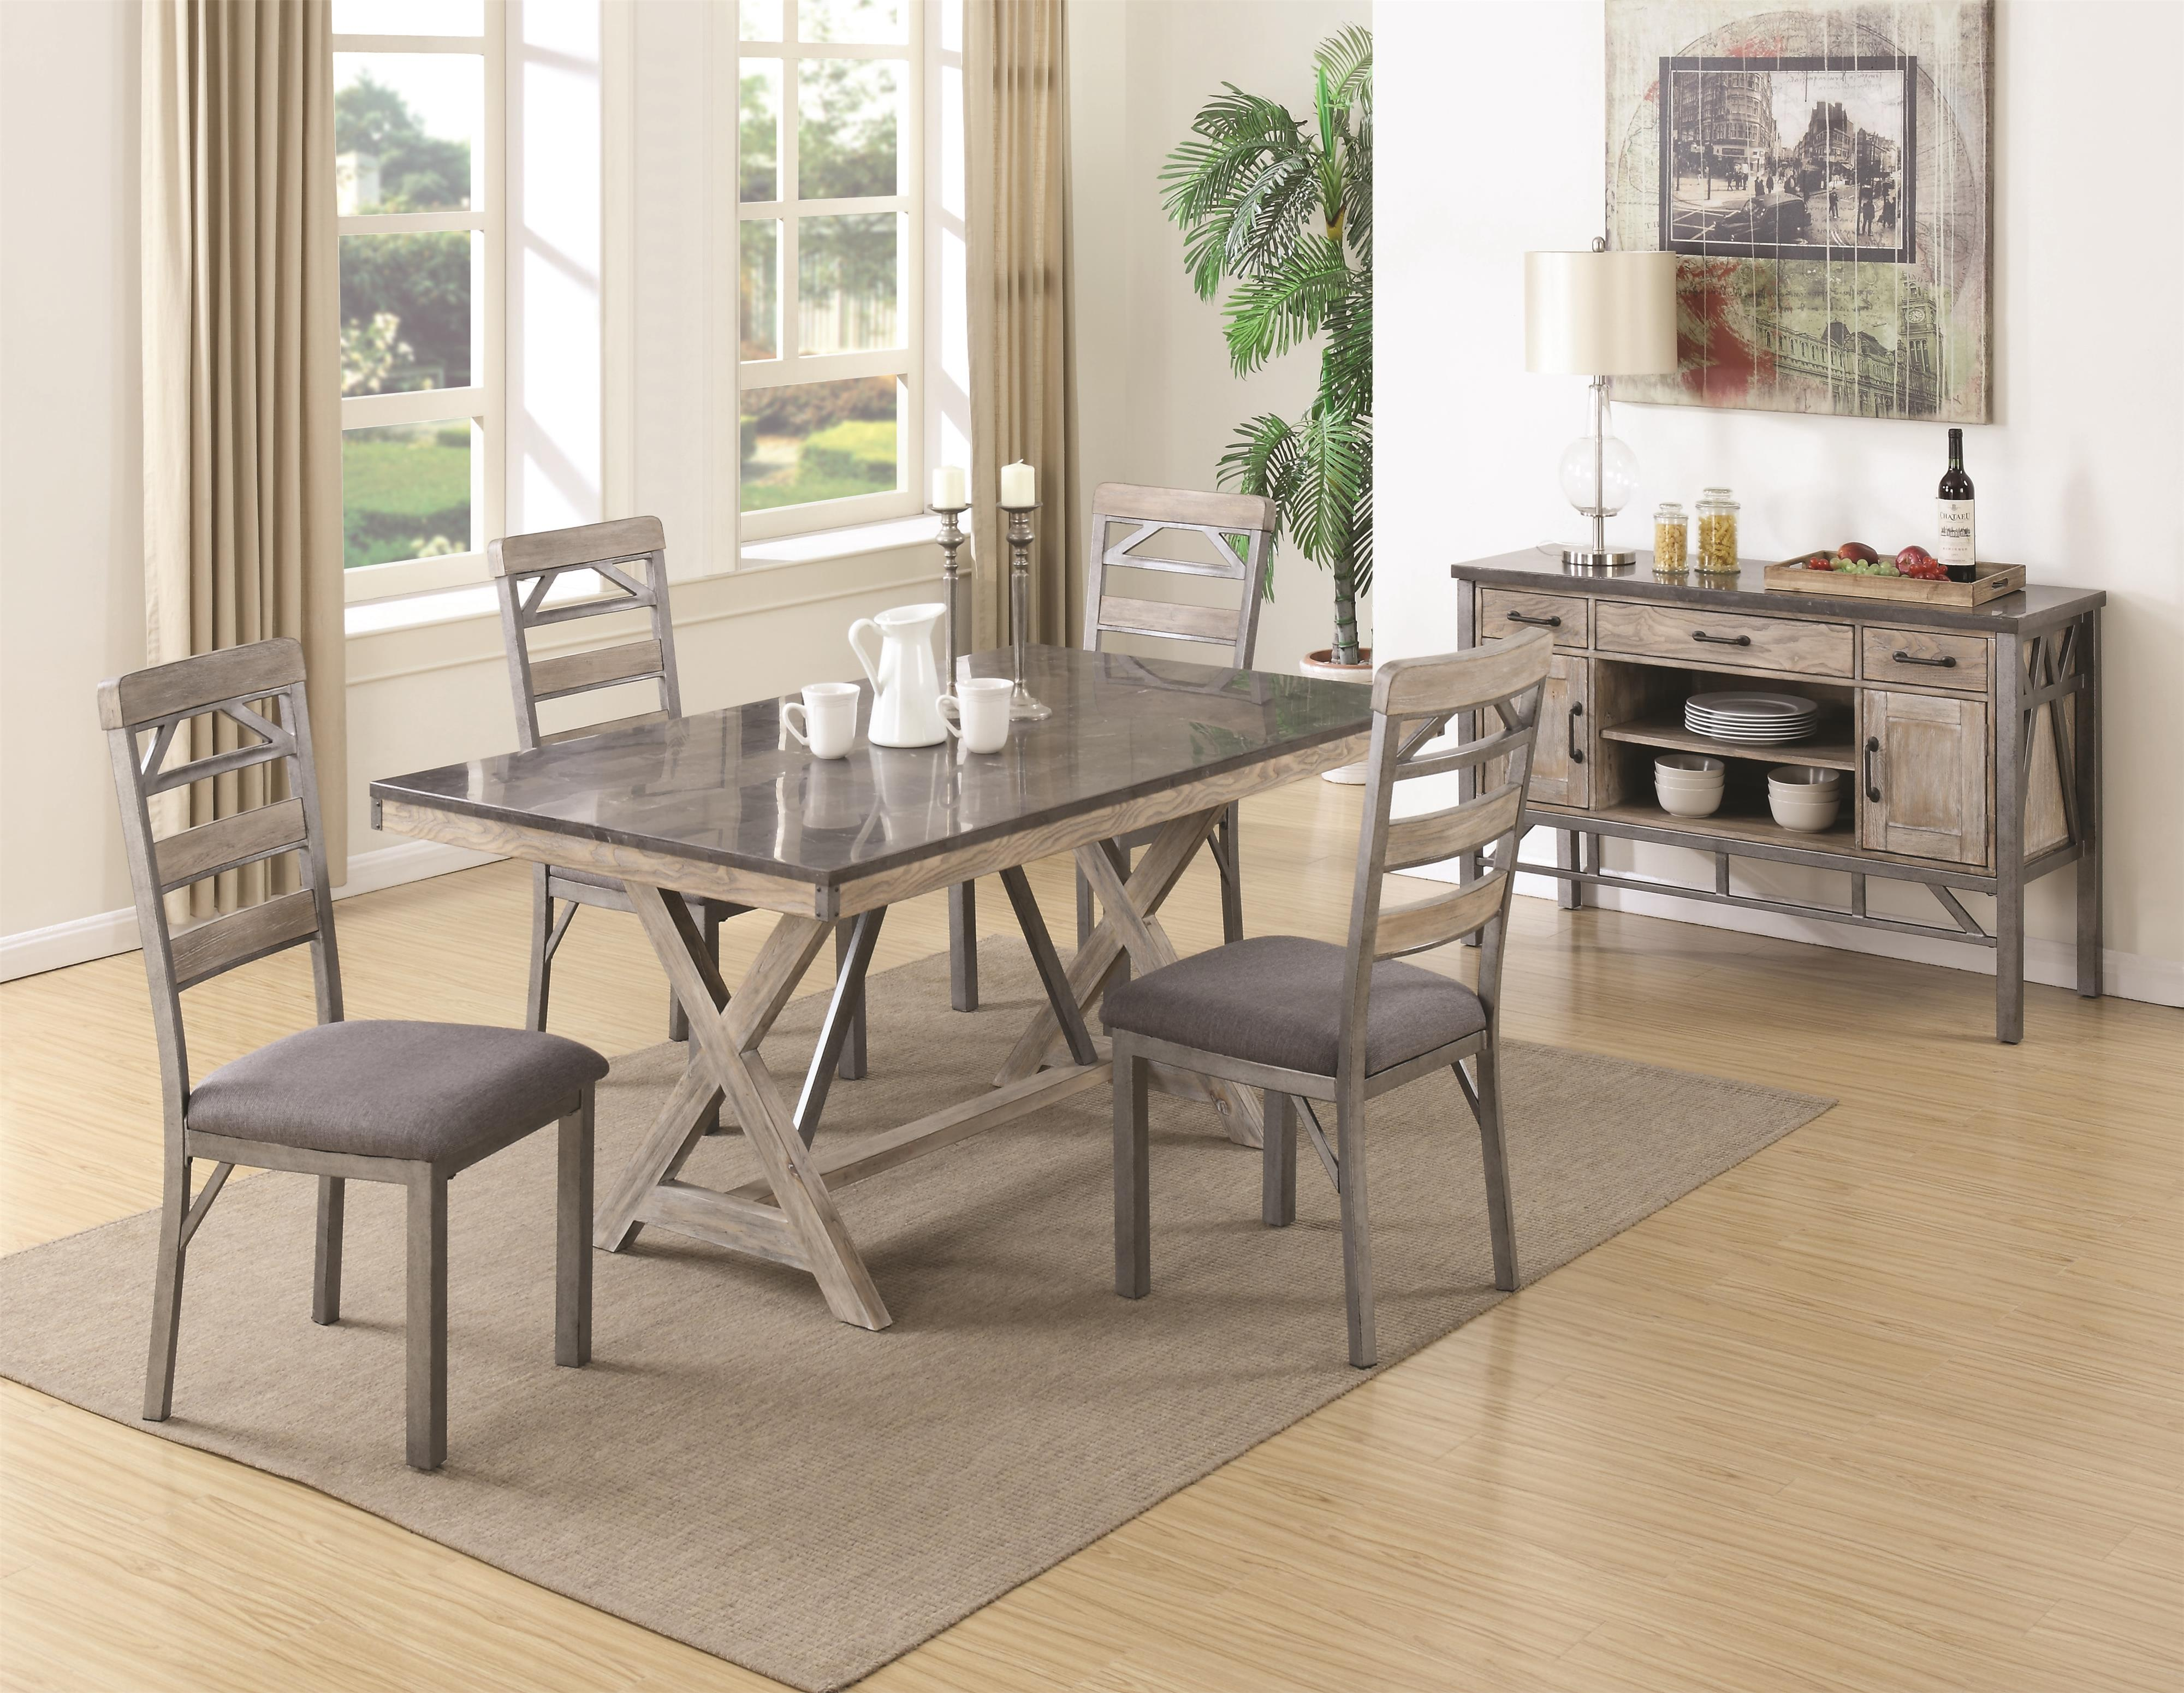 Coaster Edmonton Formal Dining Room Group - Item Number: Formal Dining Room Group 1